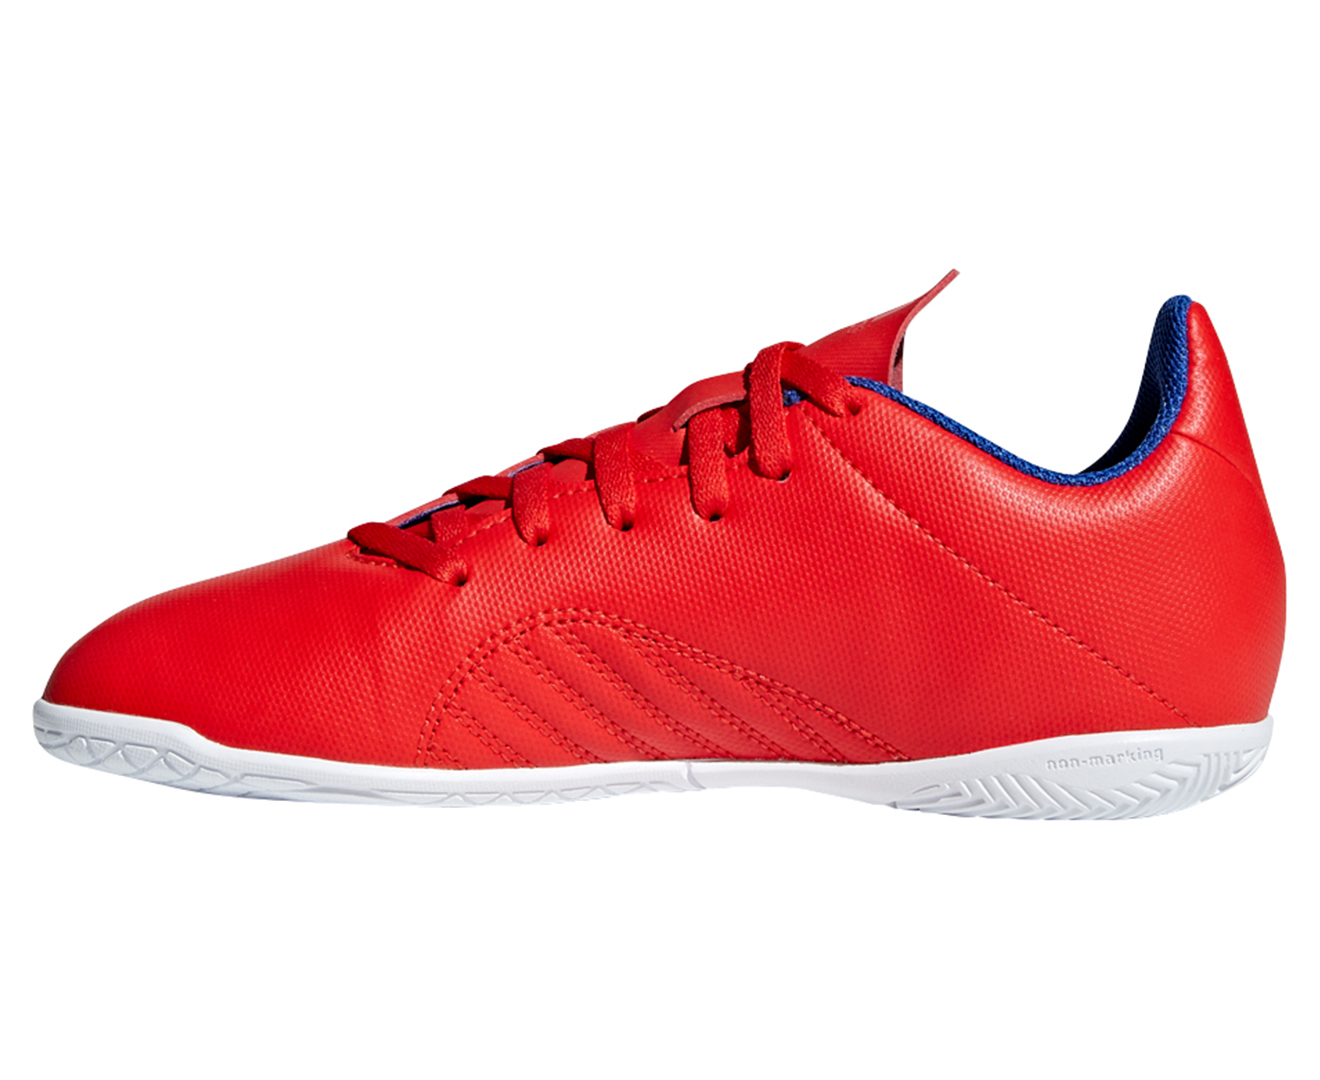 Details about Adidas Boys' X 18.4 Indoor Soccer Shoe RedSilverBlue